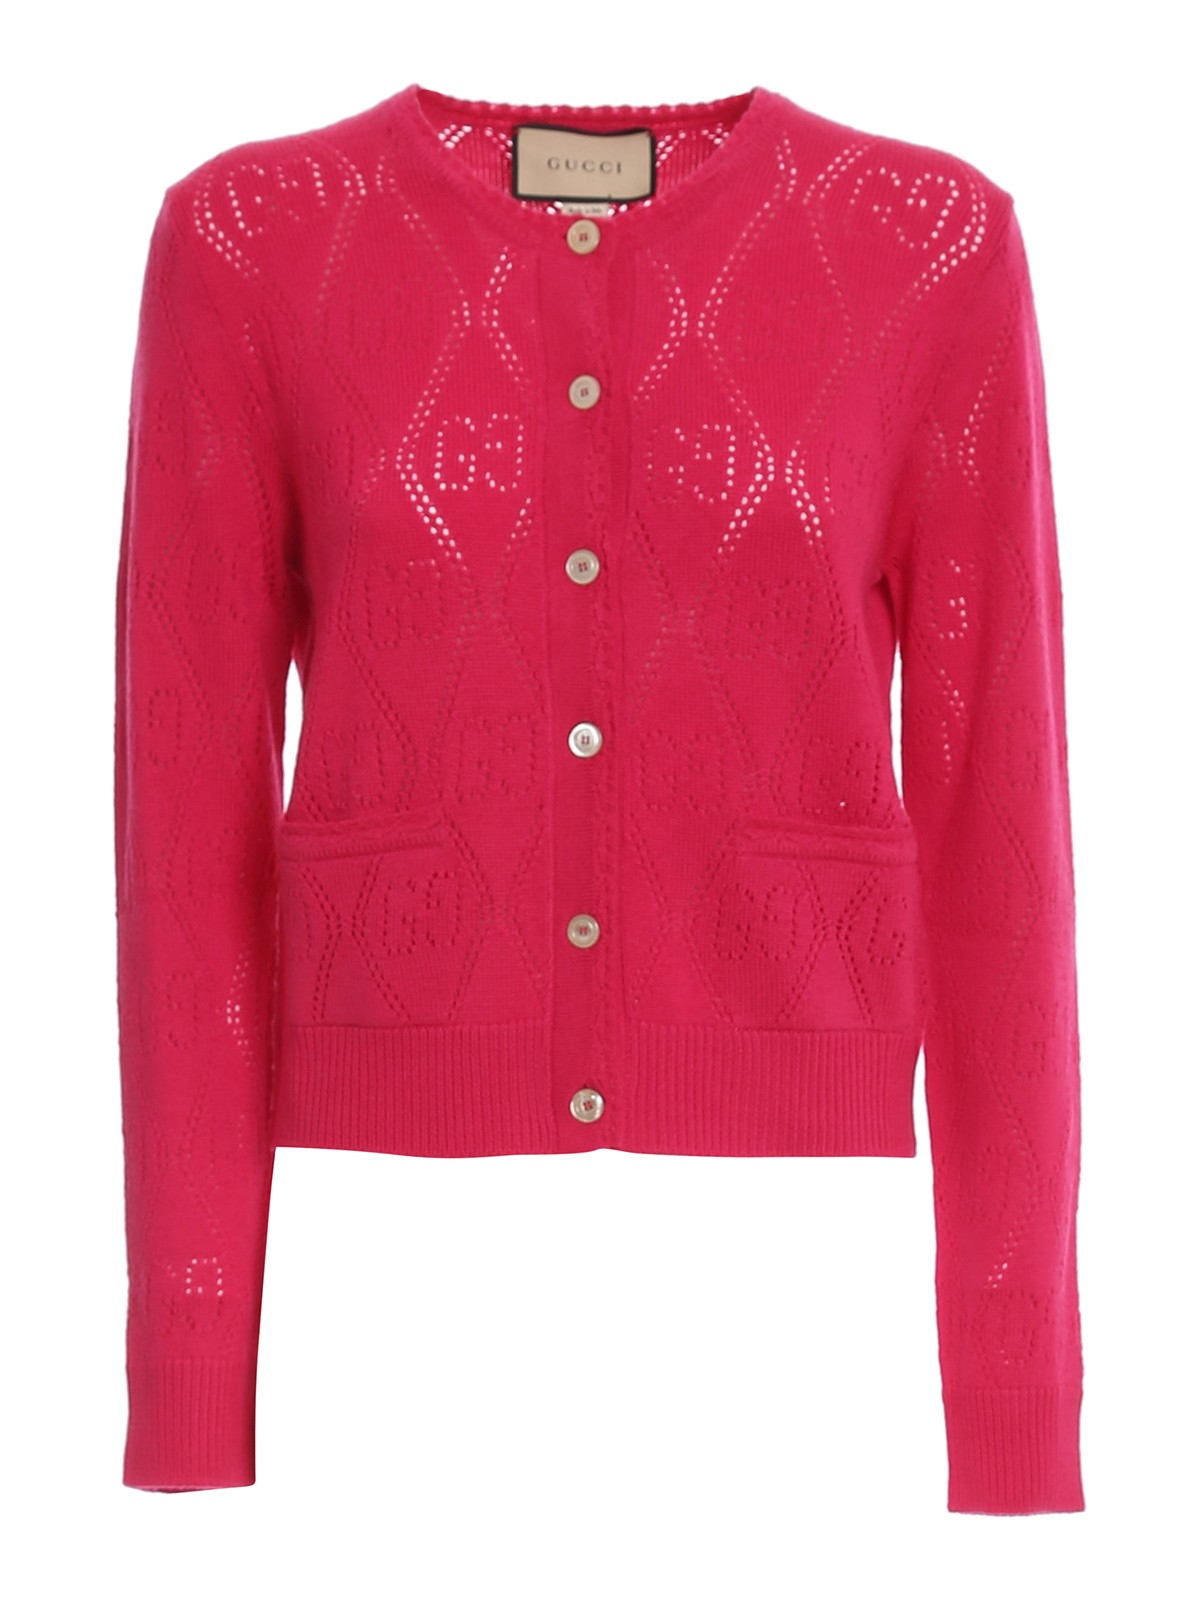 GUCCI DRILLED GG PATTERNED CARDIGAN